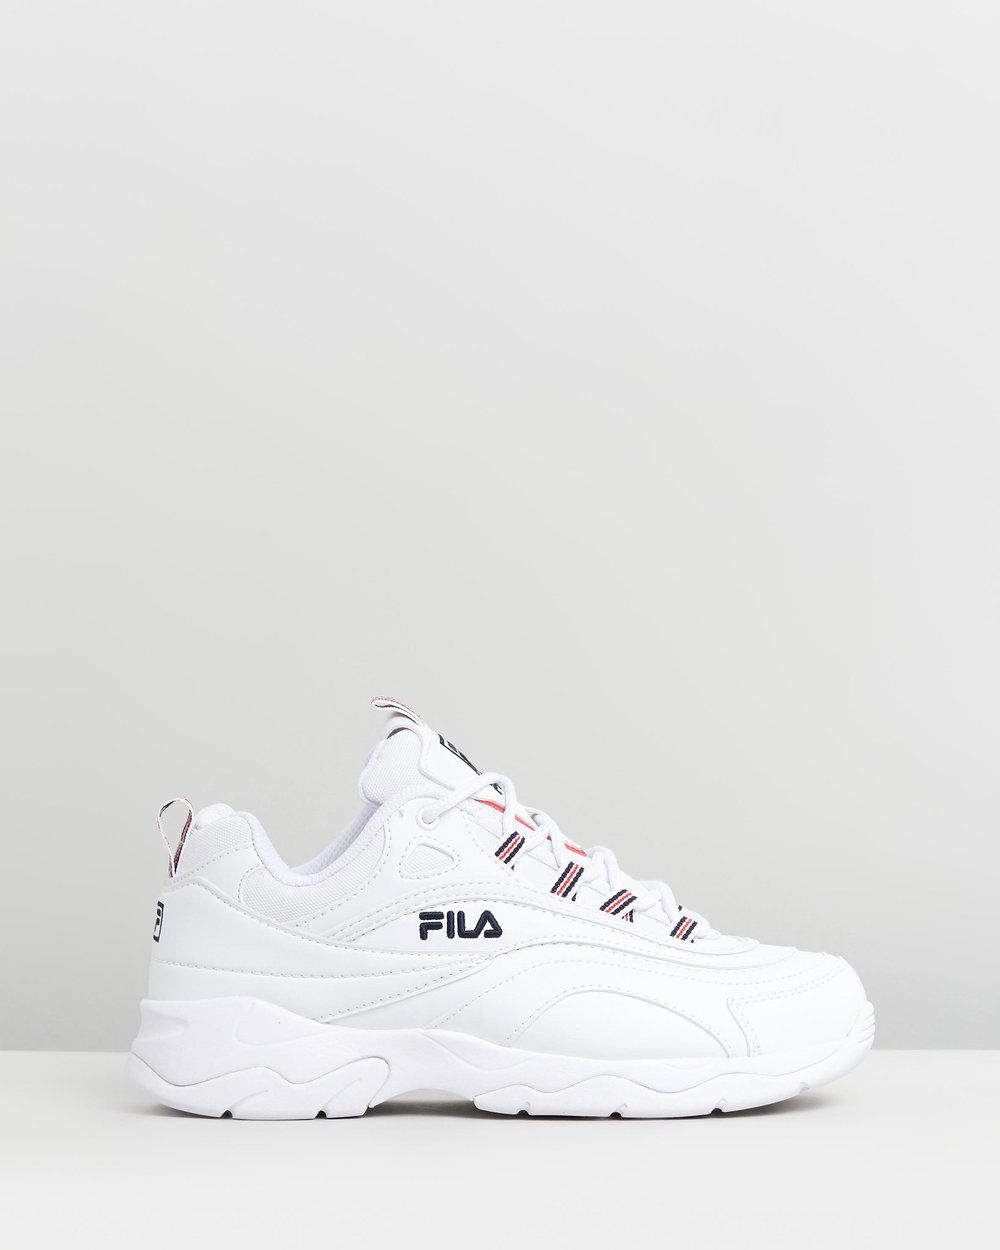 1b36c2922408 Buy Fila Ray - Women's by Fila online at THE ICONIC. Free and fast delivery  to Australia and New Zealand.